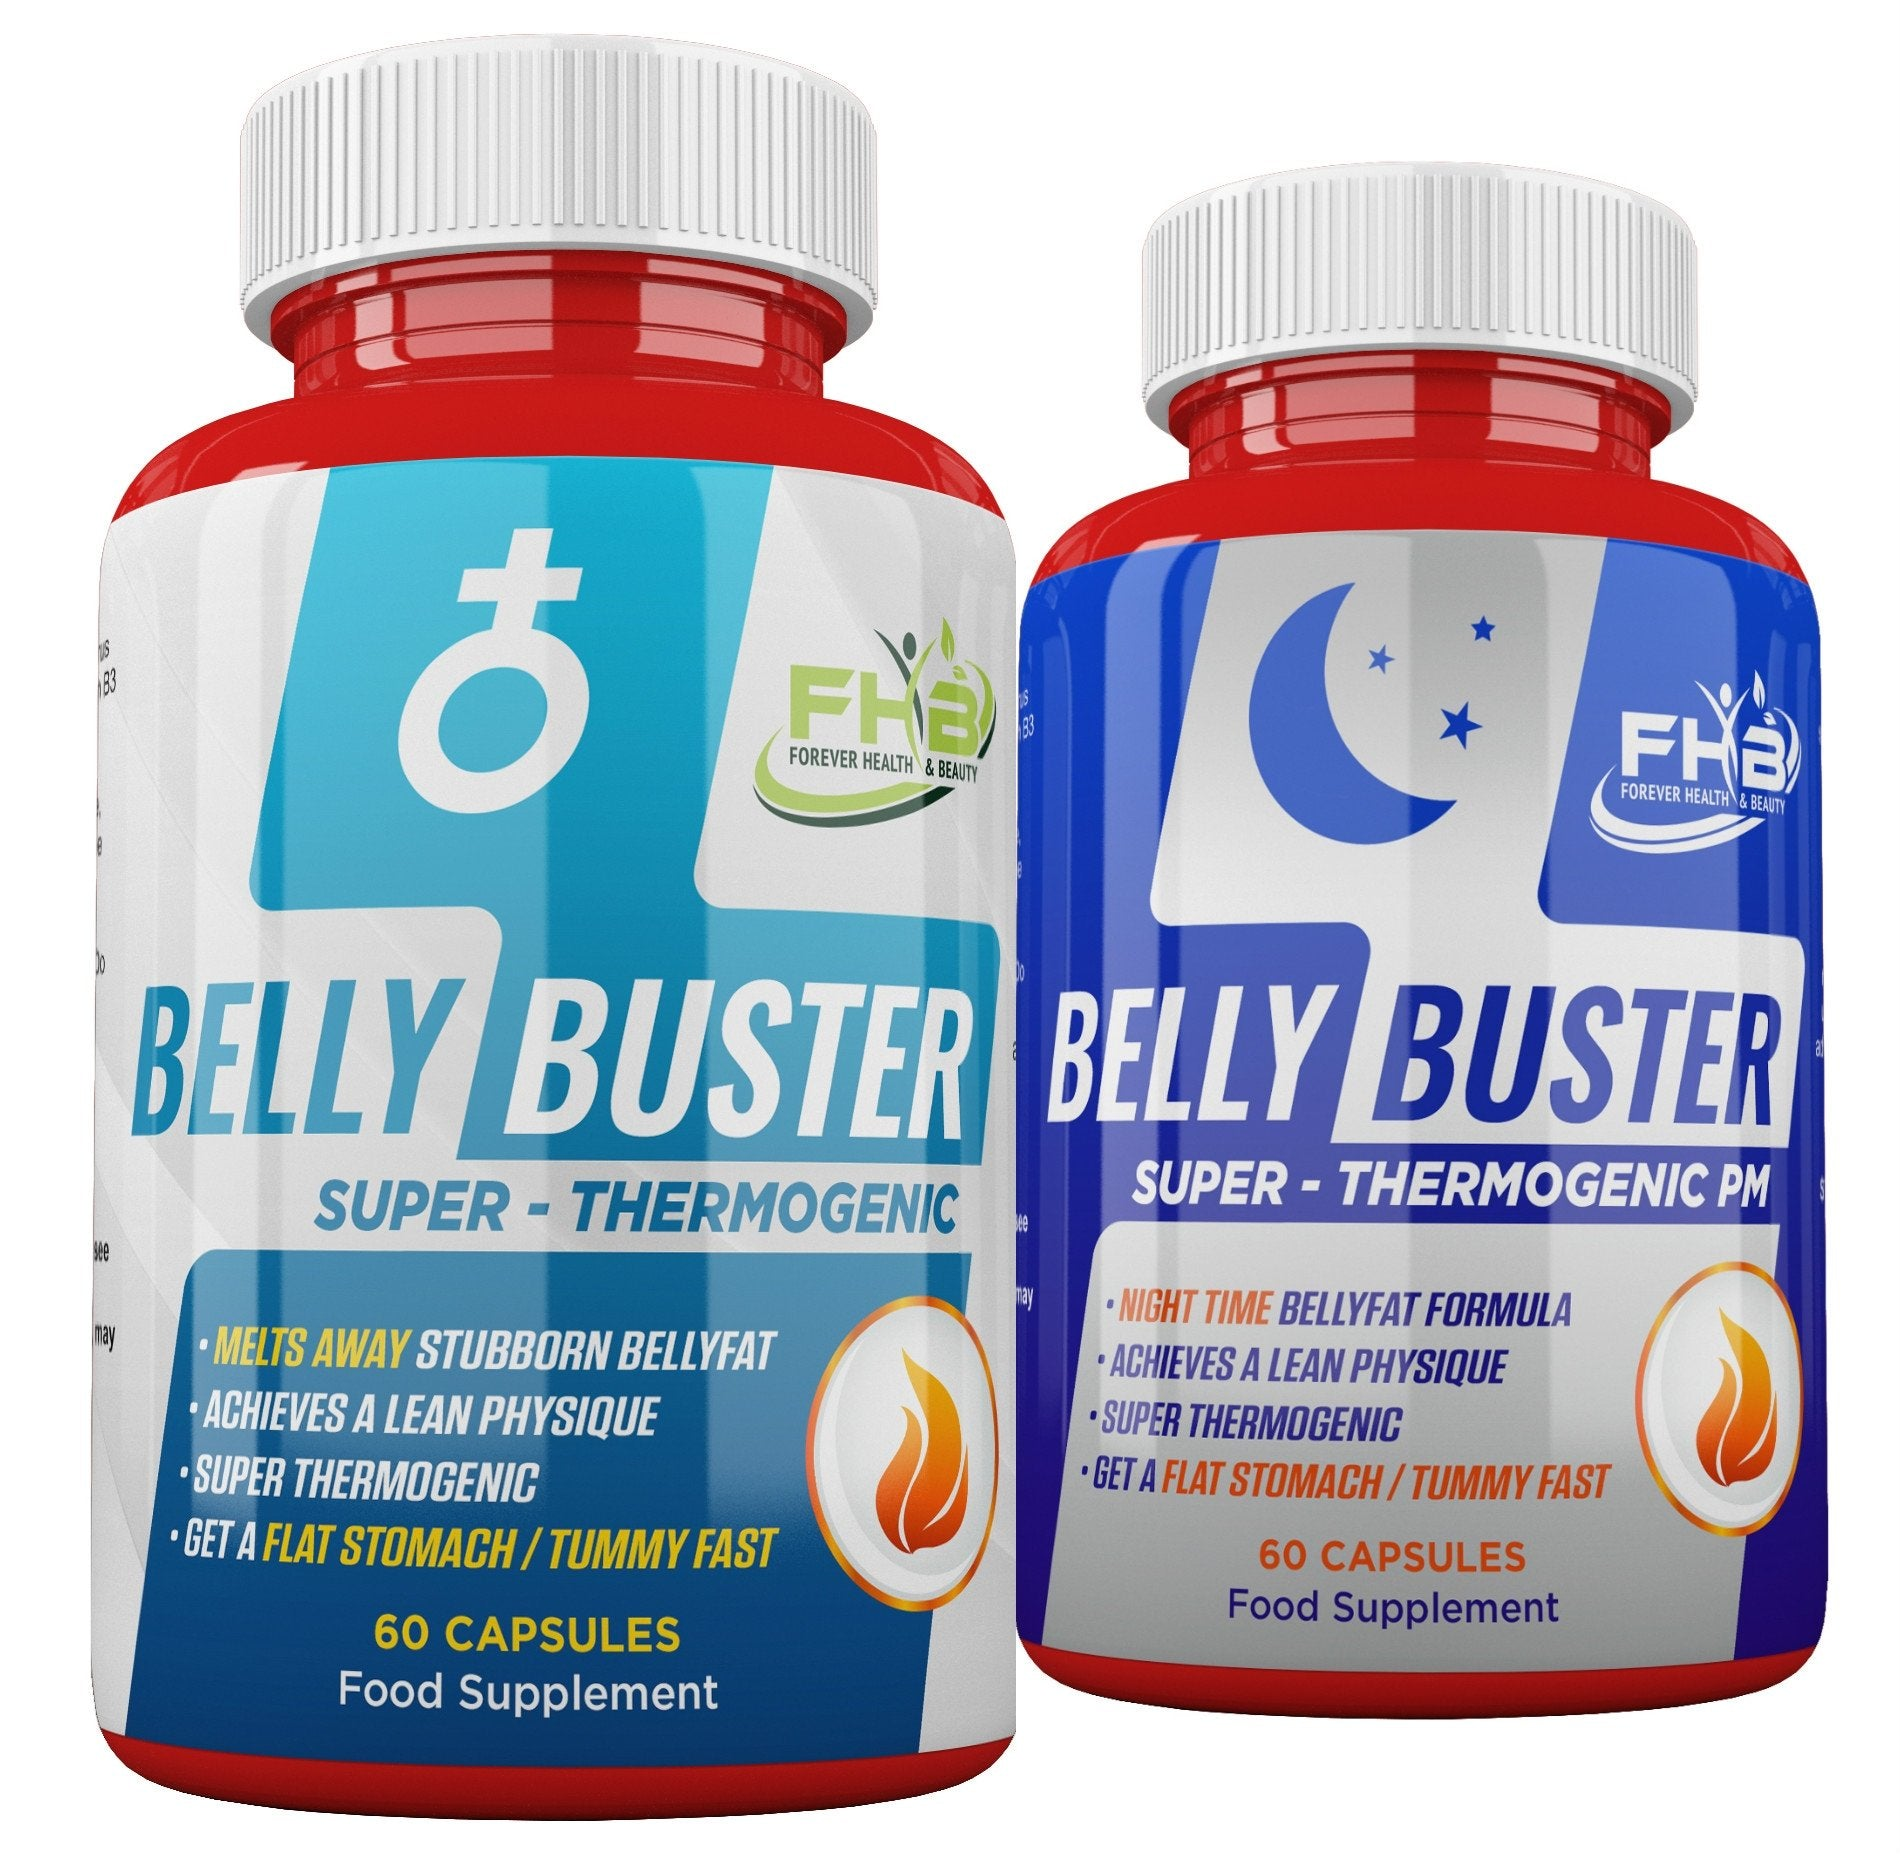 Belly Buster Night & Belly Buster For Men Combo - Lose Belly Fat